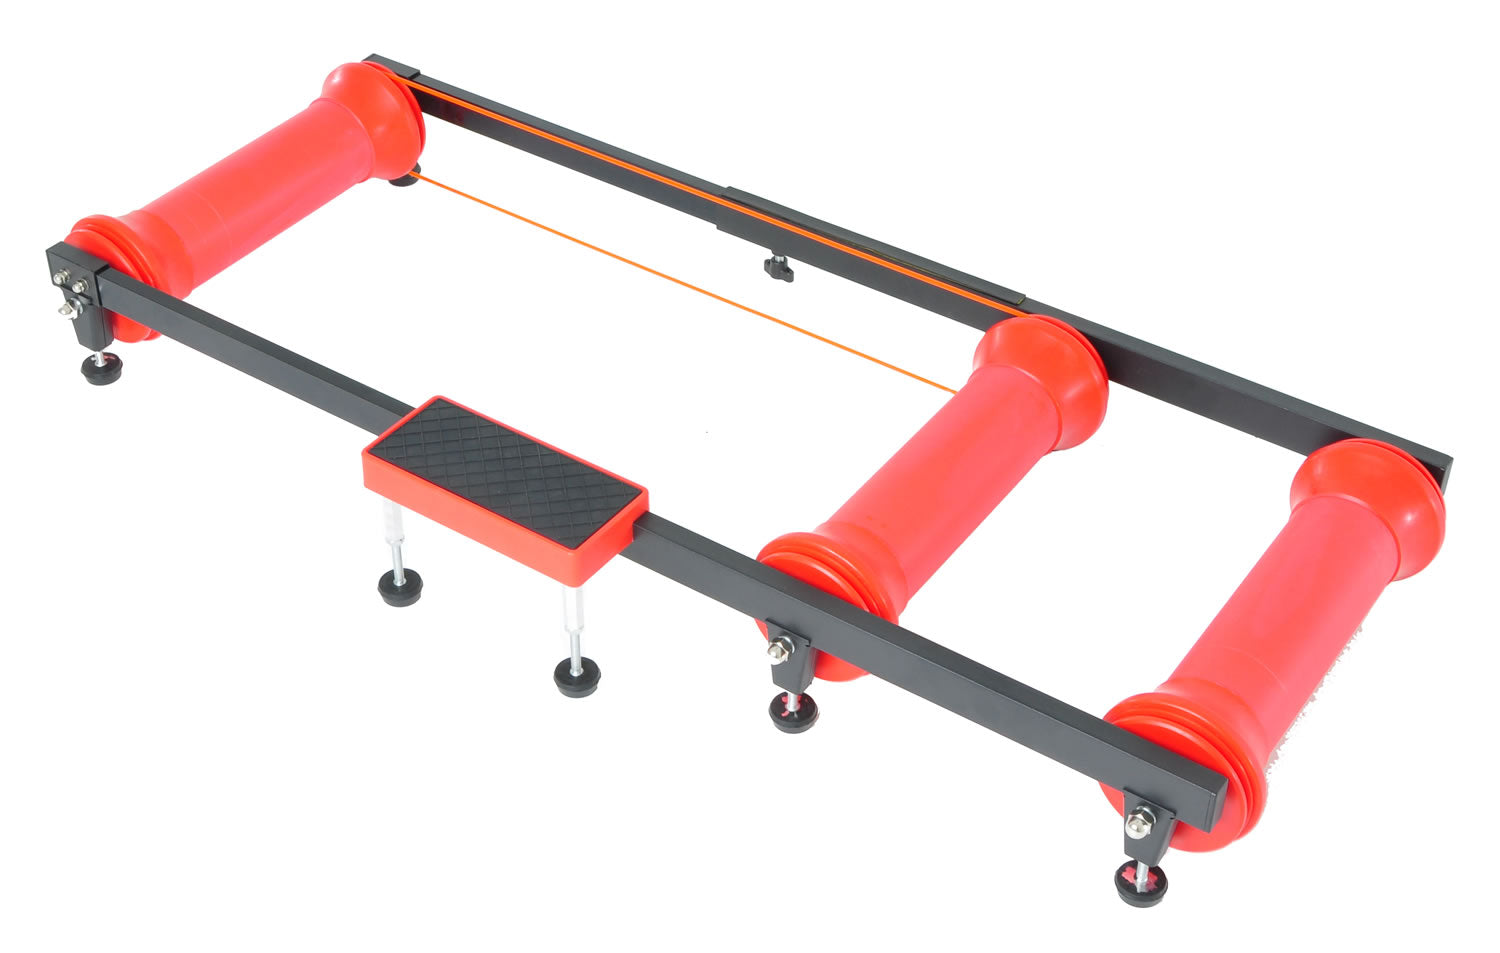 products/530-TRAINER-ROLLER__02_jpg.jpg